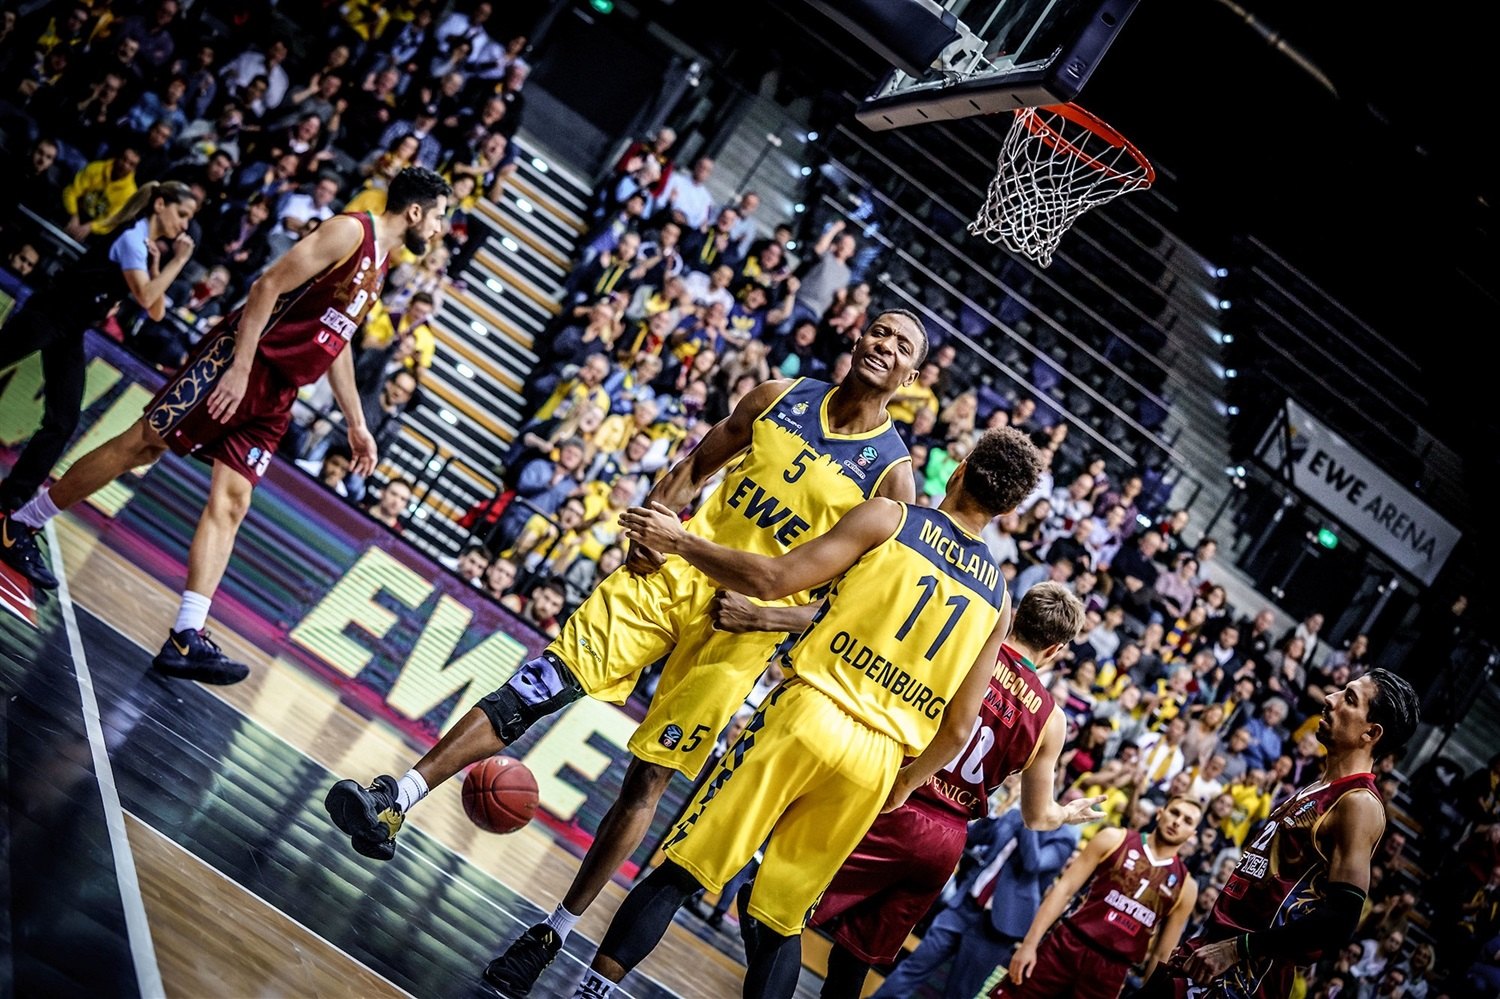 Justin Sears - EWE Baskets Oldenburg (photo Ulf Duda - fotoduda.de) - EC19